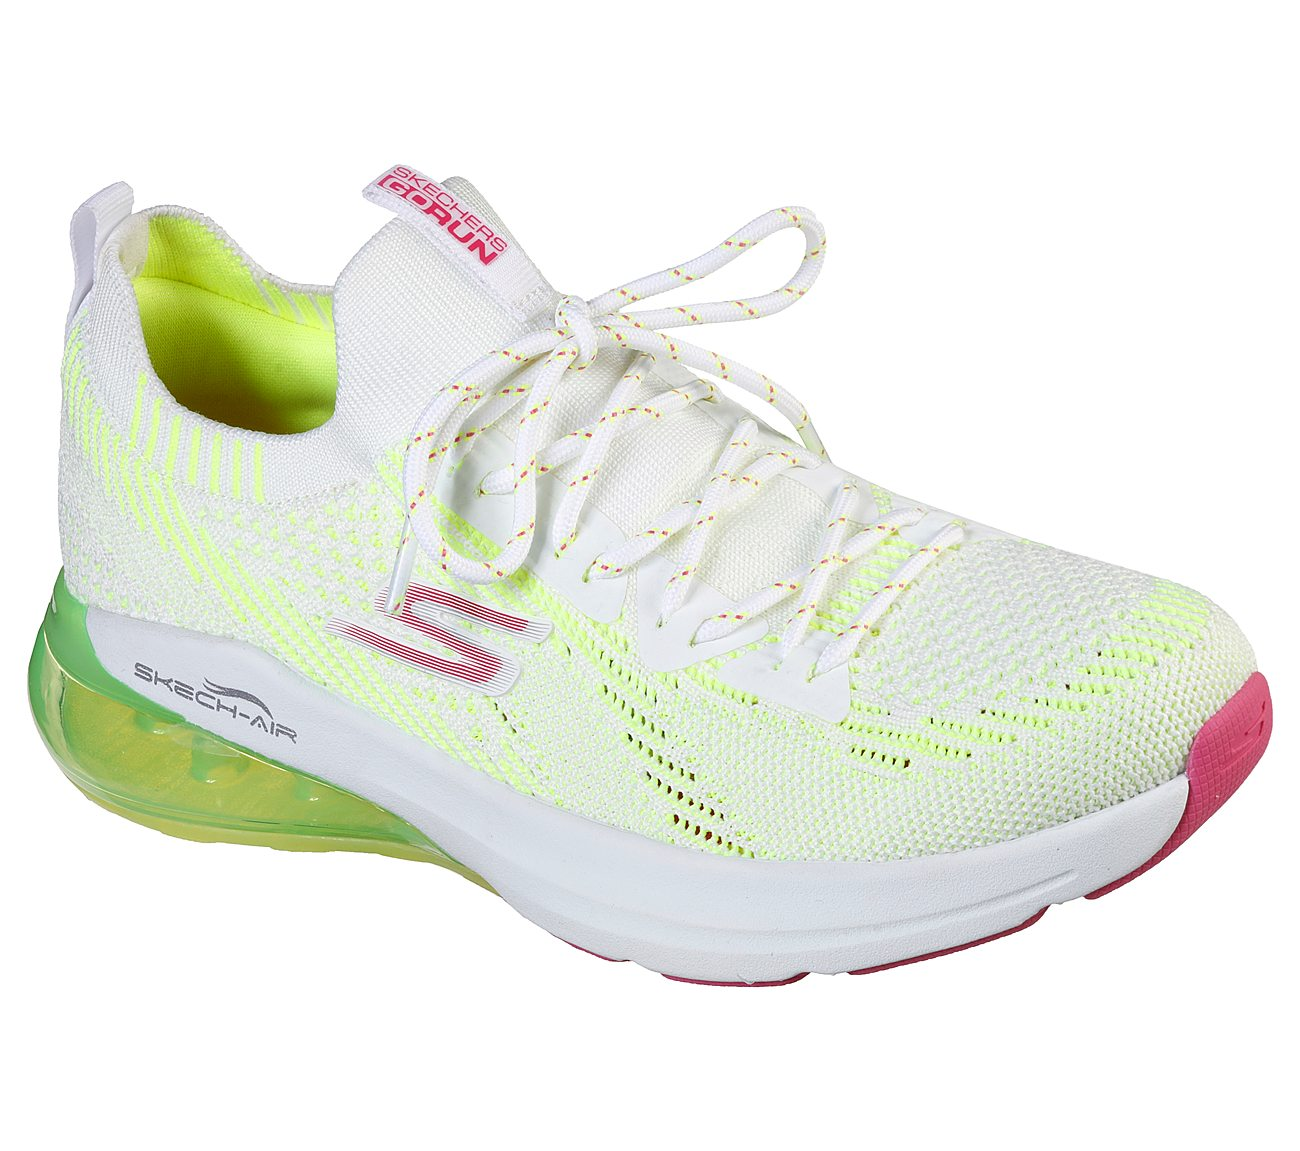 Skechers GOrun Air - Stratus